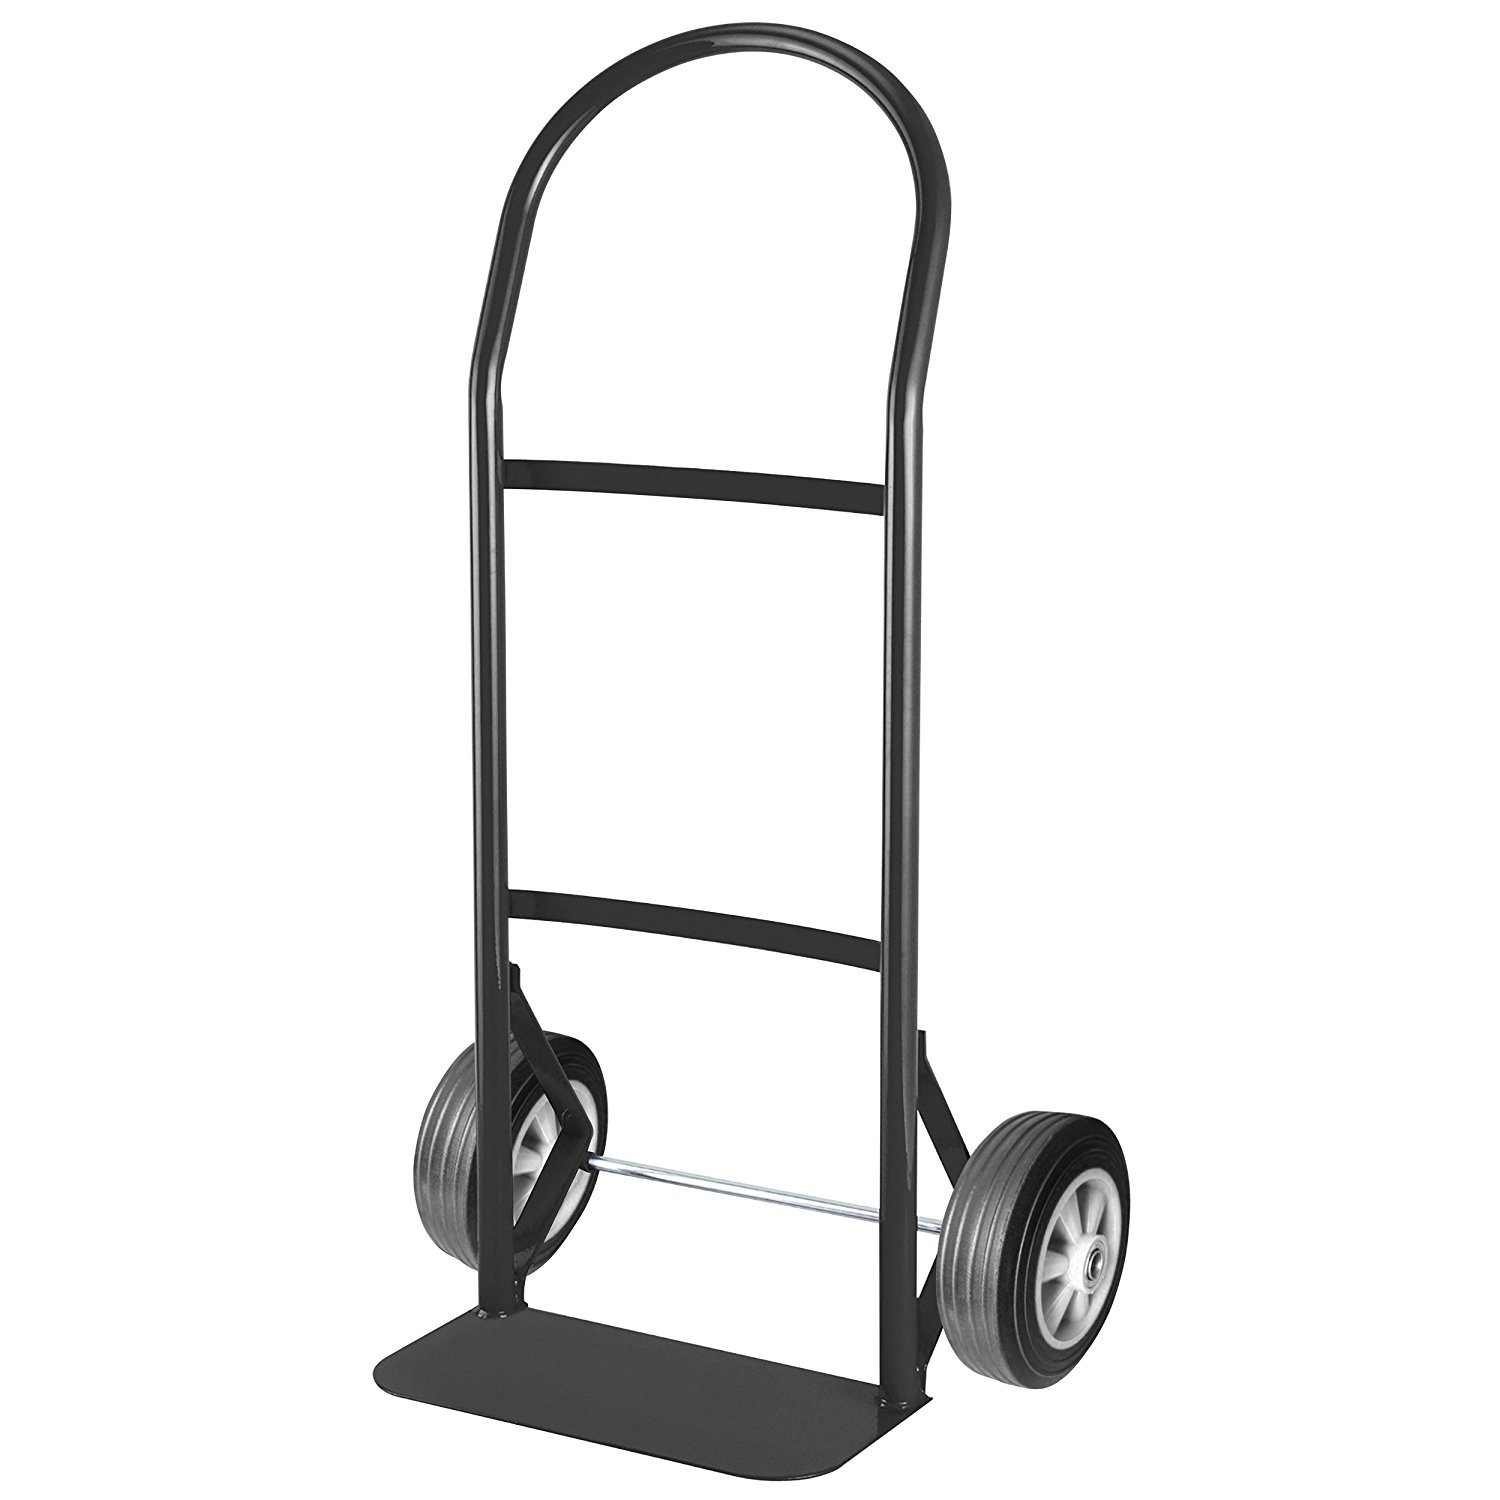 Pack-N-Roll 85-030 Hand Truck Pound, 300 lbs Capacity